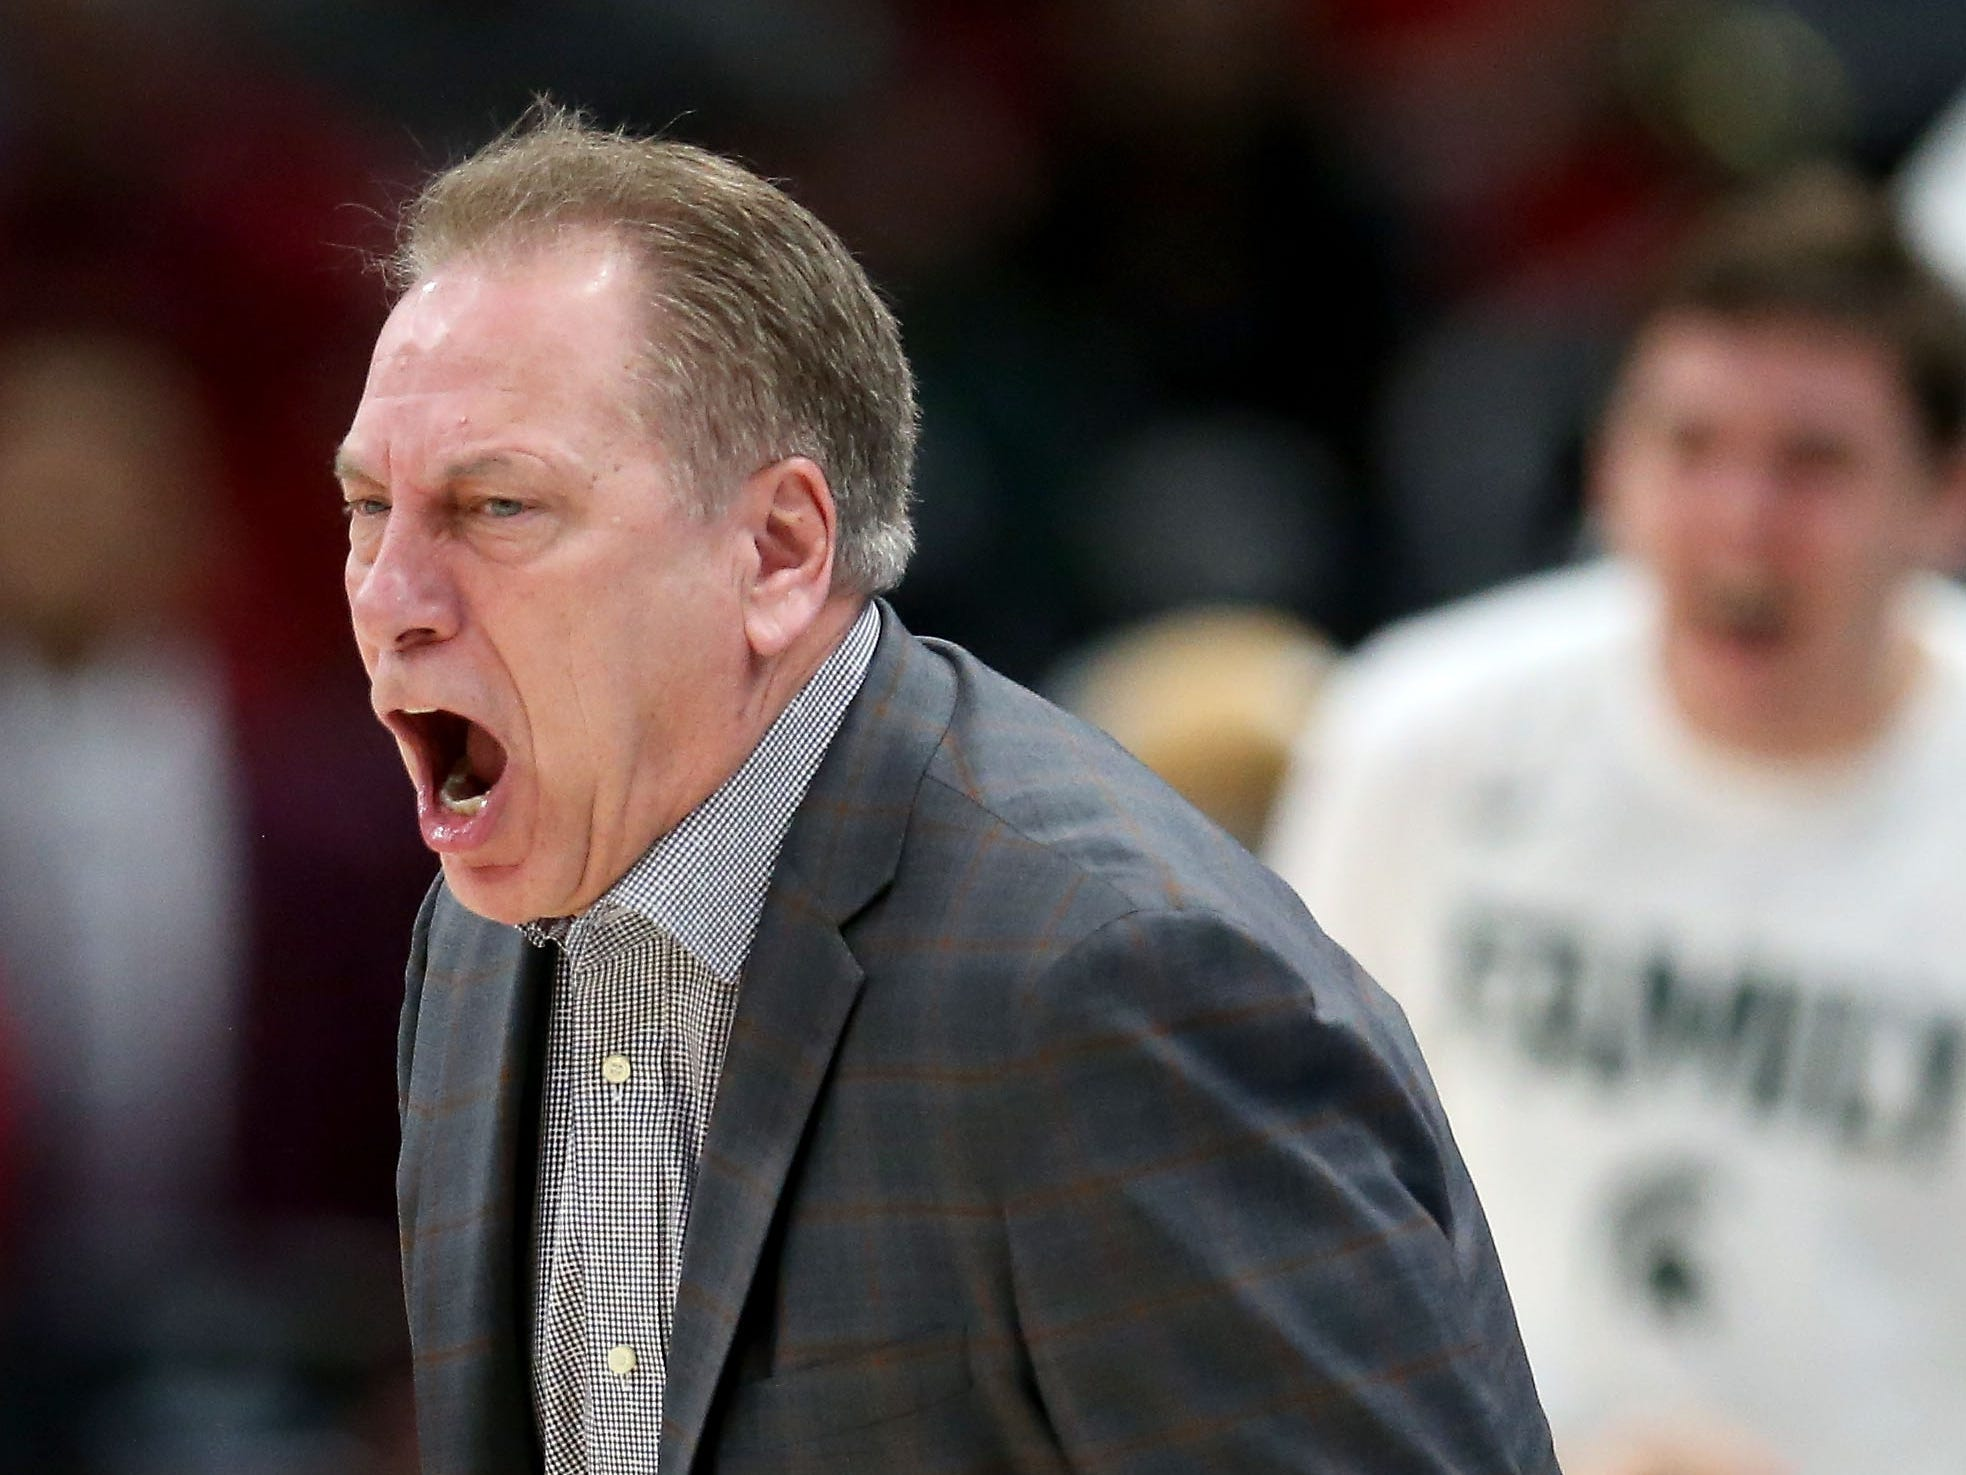 Head coach Tom Izzo of the Michigan State Spartans reacts in the first half against the Wisconsin Badgers during the semifinals of the Big Ten Basketball Tournament at the United Center on March 16, 2019 in Chicago, Illinois.